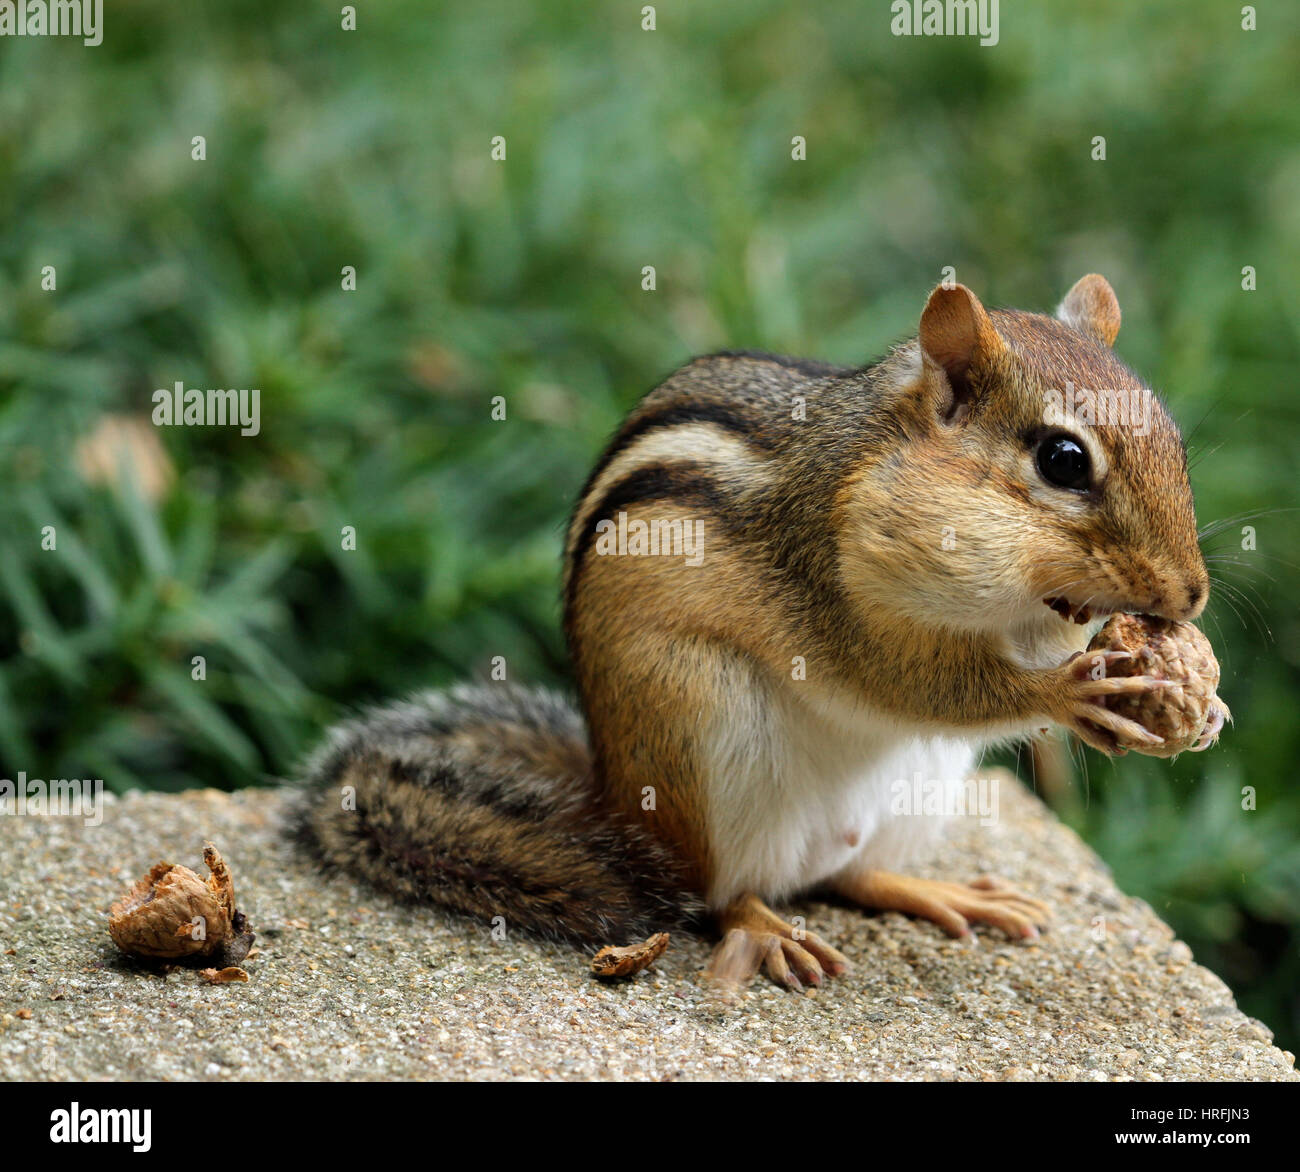 Close-up of an Eastern chipmunk (Tamias striatus) with bulging cheeks eating an acorn Stock Photo